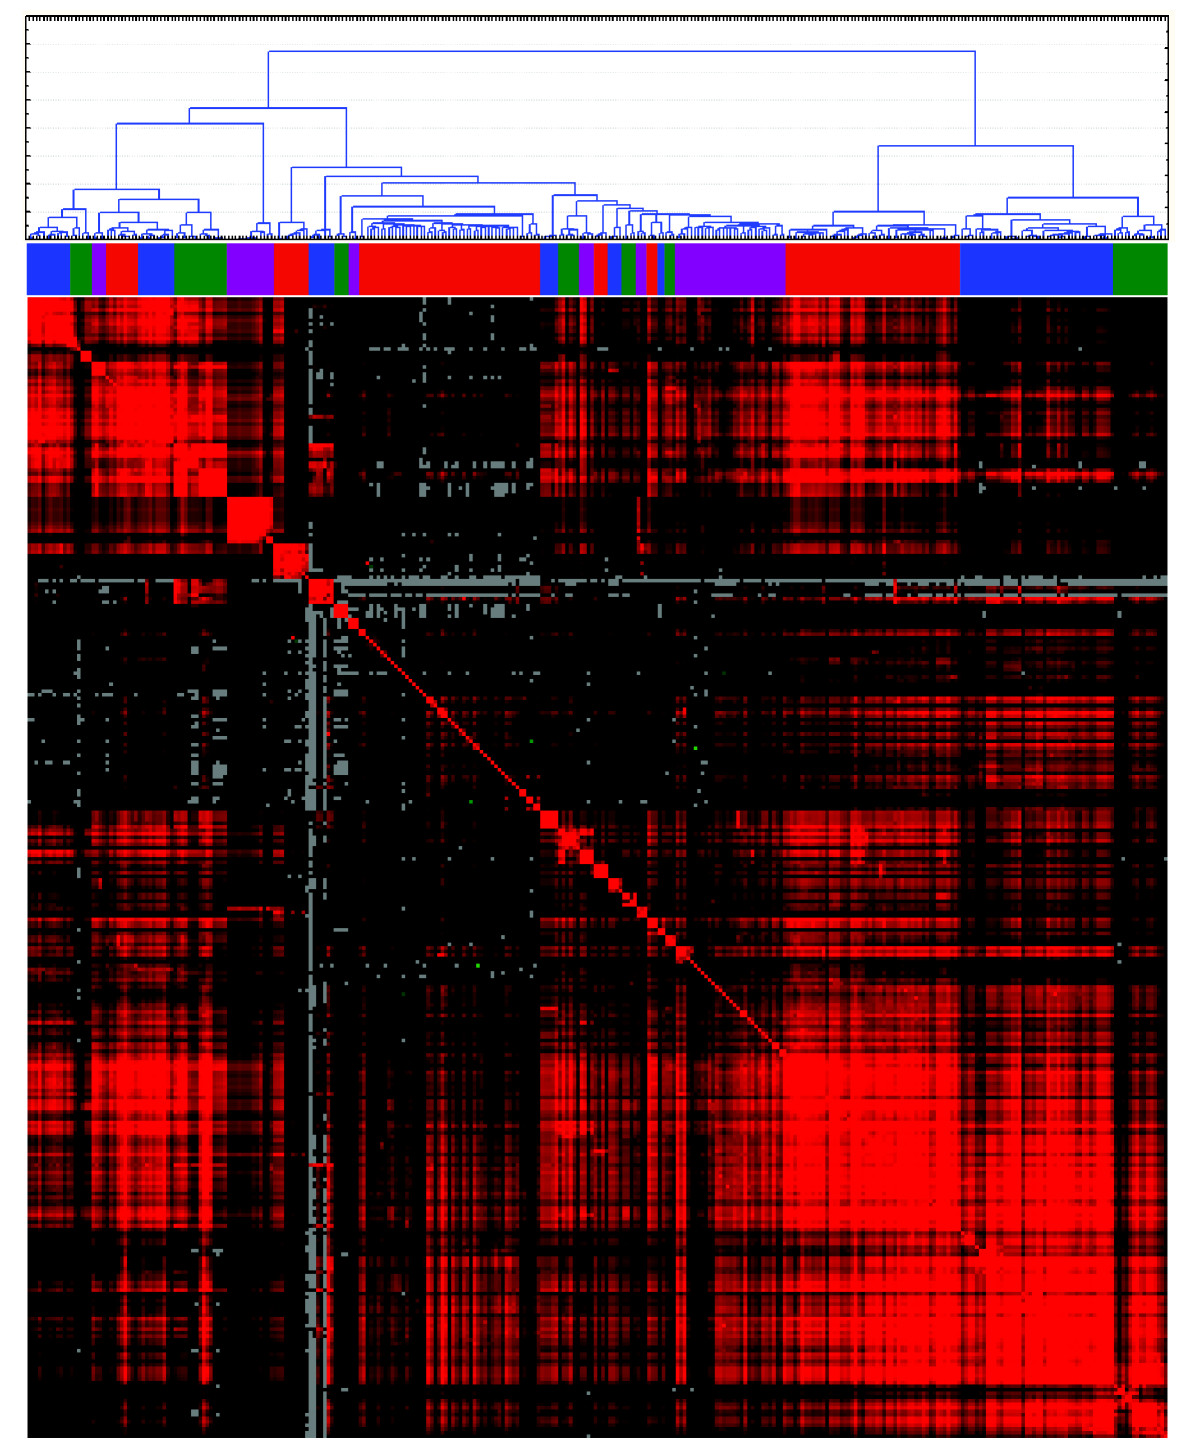 http://static-content.springer.com/image/art%3A10.1186%2F1471-2164-11-145/MediaObjects/12864_2009_Article_2739_Fig8_HTML.jpg